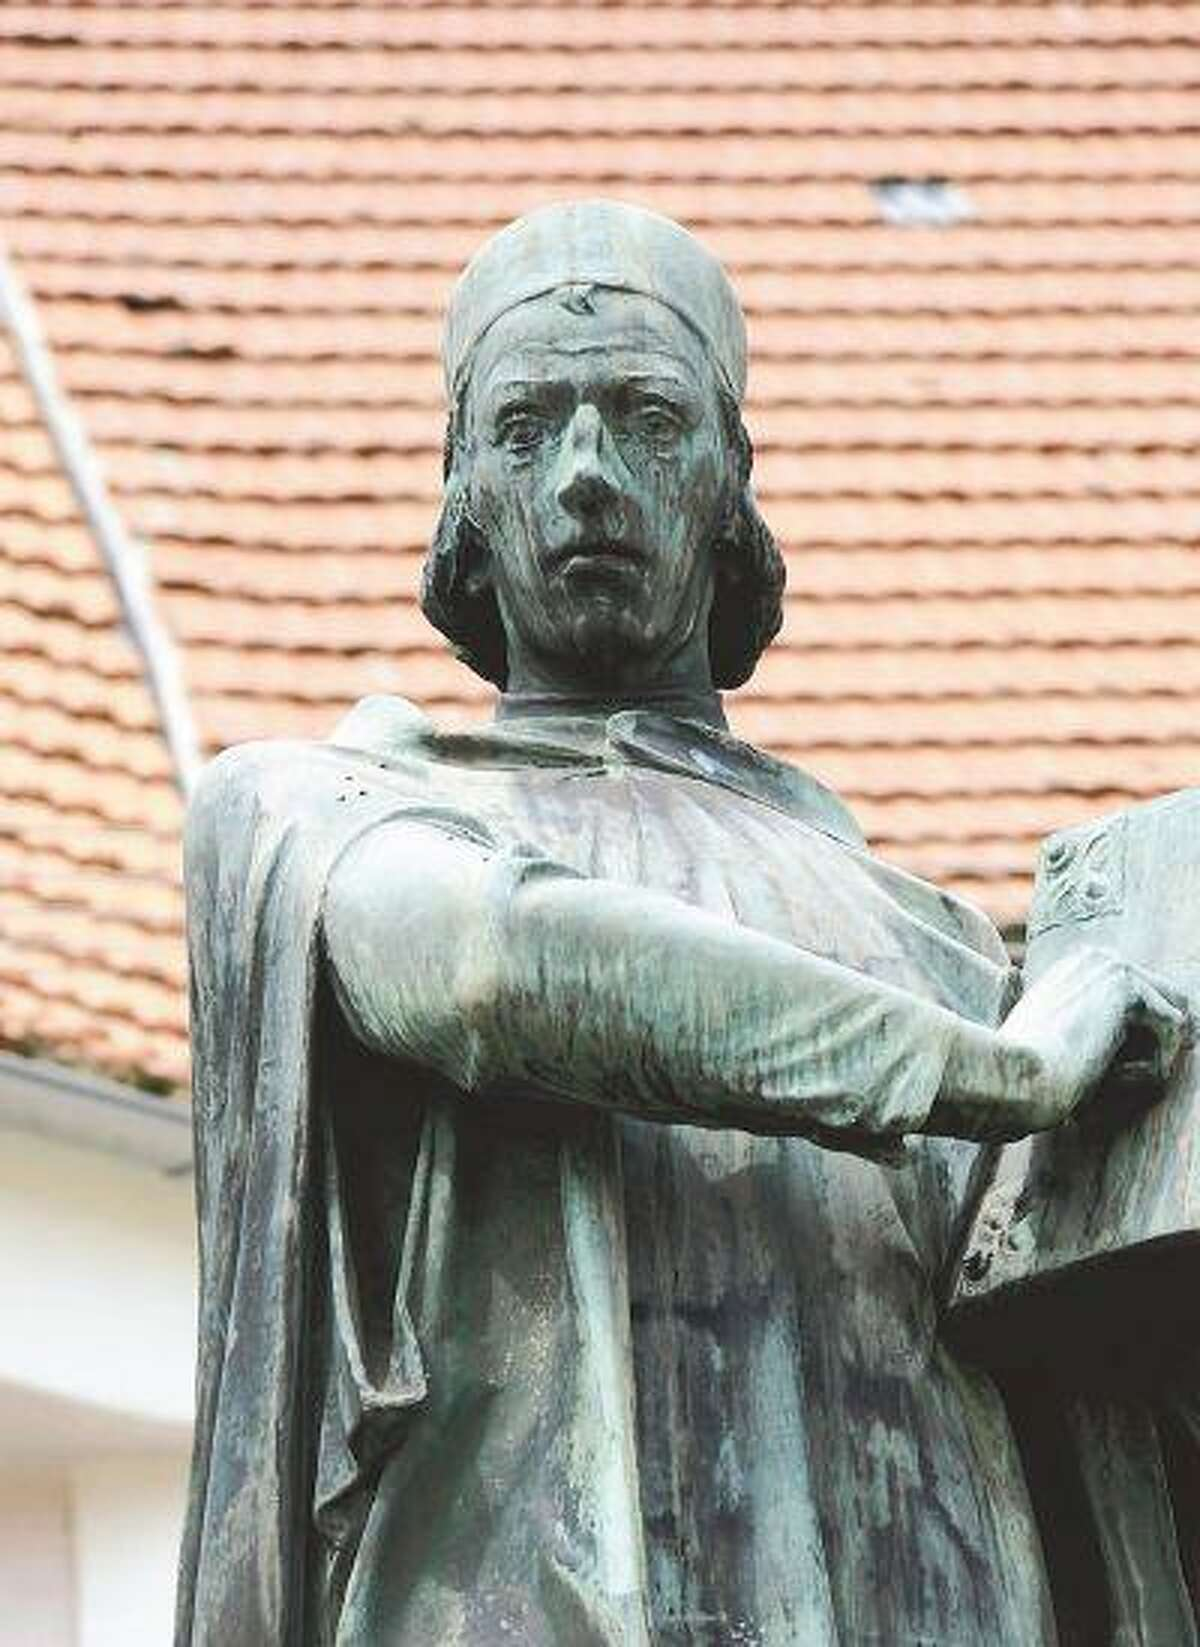 A bronze statue of Jan Hus in central Husinec; Hus pushed for reforms in the Catholic Church and was burned at the stake about 100 years before Martin Luther triggered church reform from Germany. (The Yomiuri Shimbun/June 19, 2013)